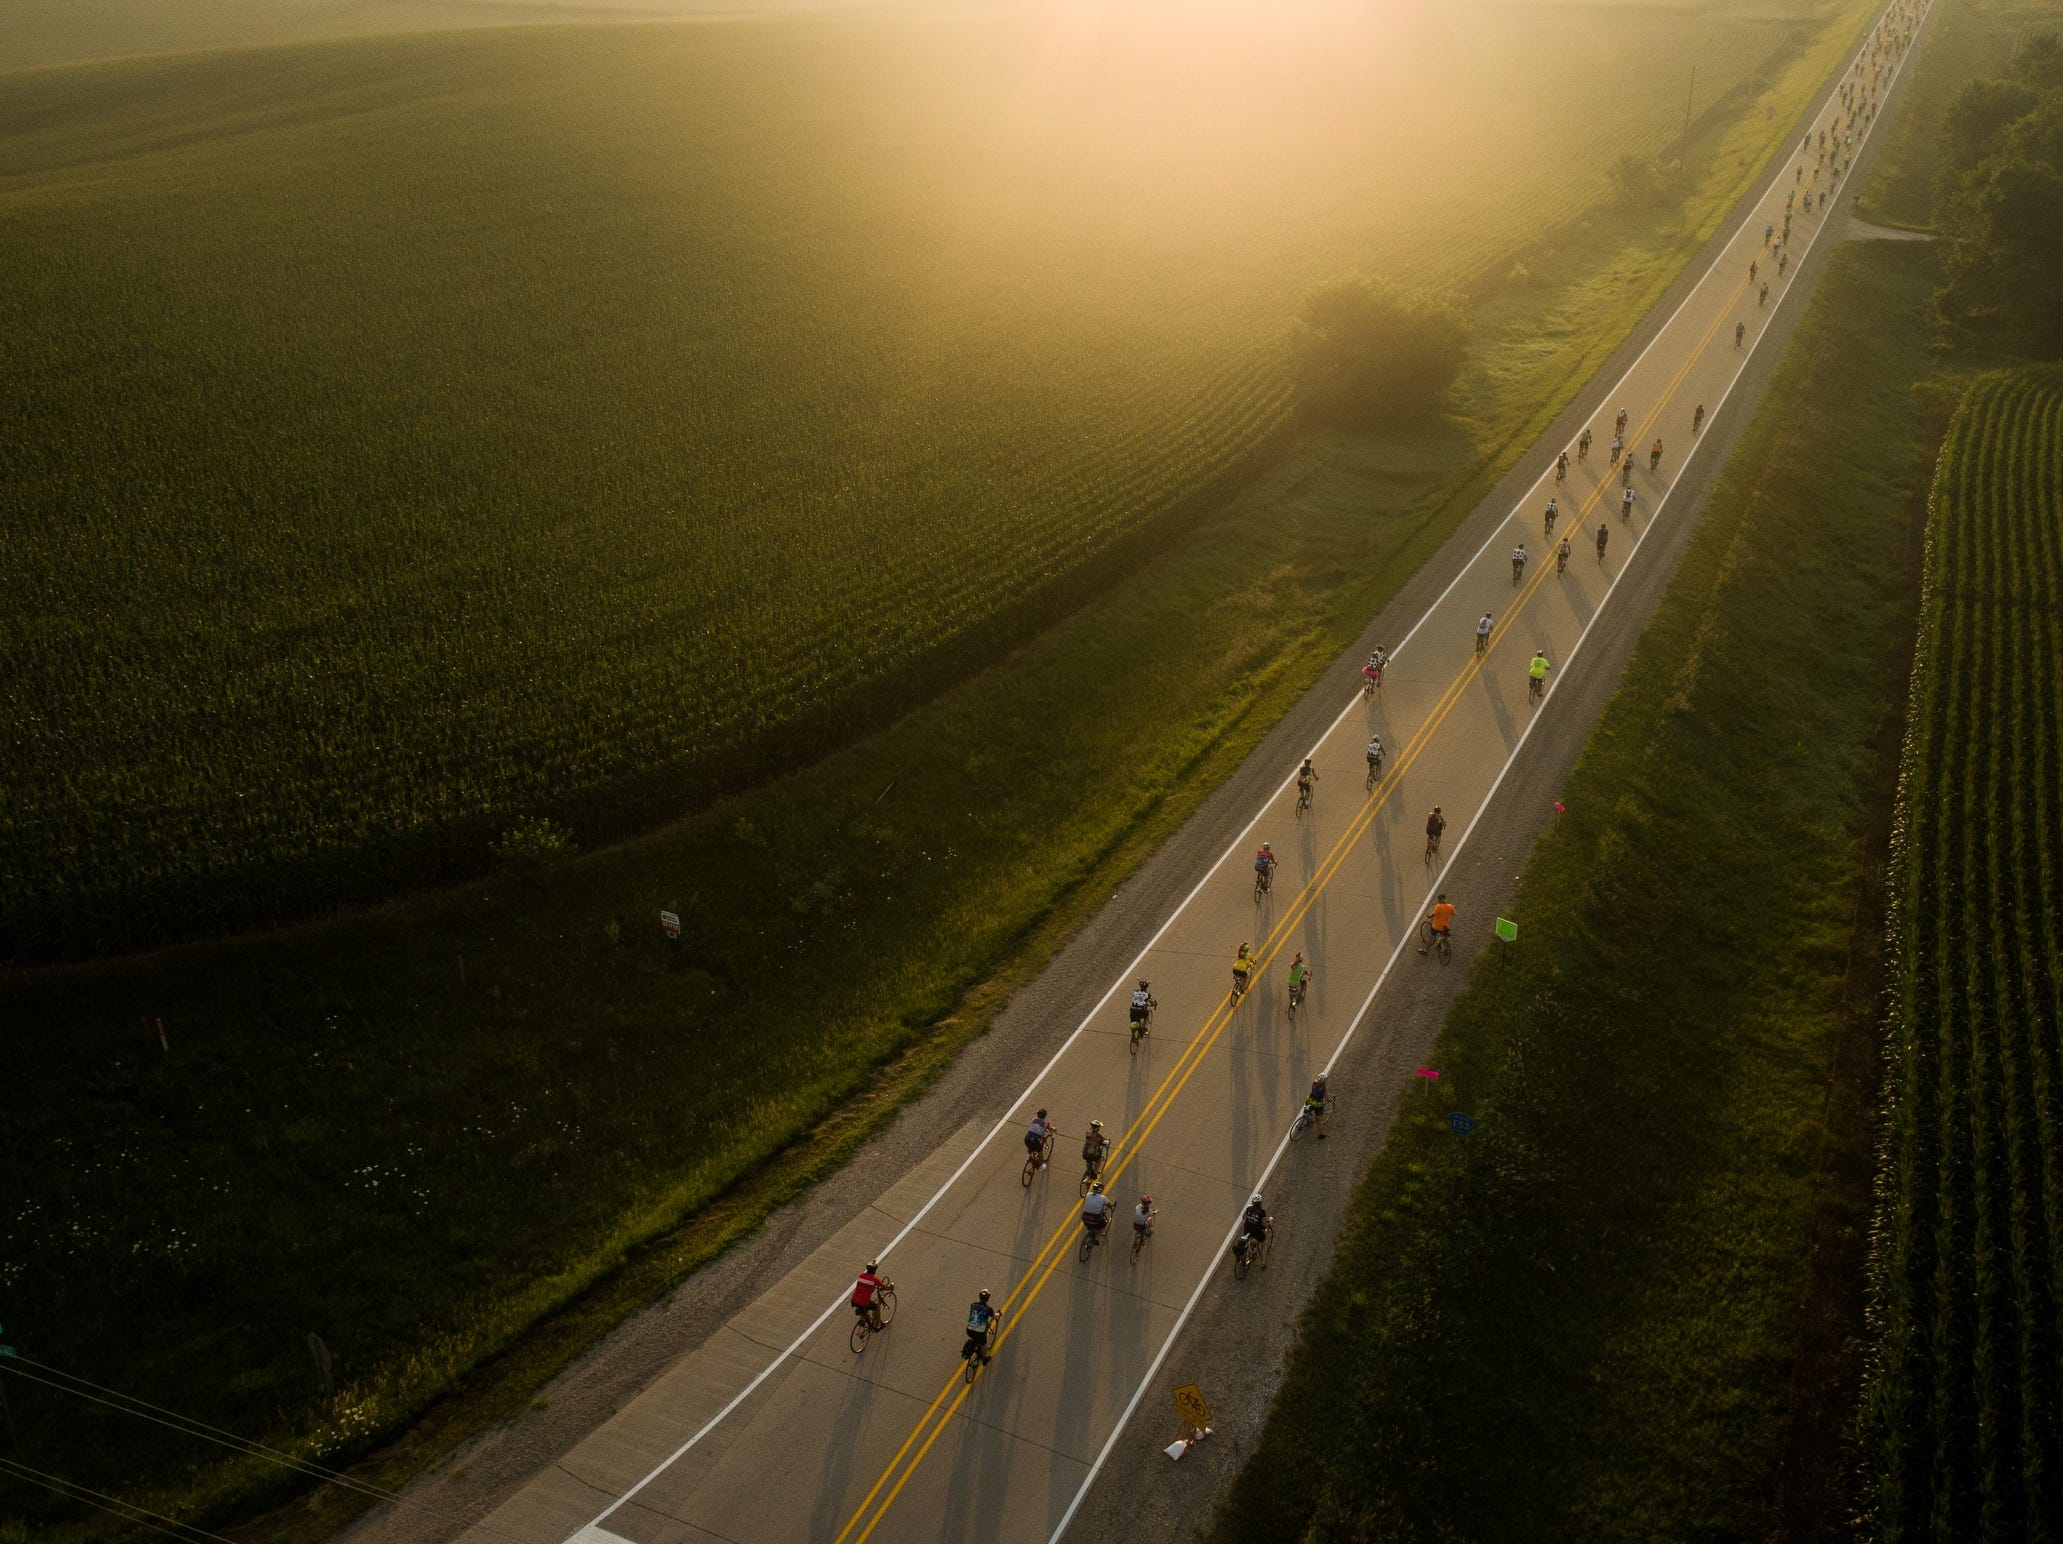 July 23, 2018: Cyclist make their way during the second day of RAGBRAI bicycle ride in Iowa.